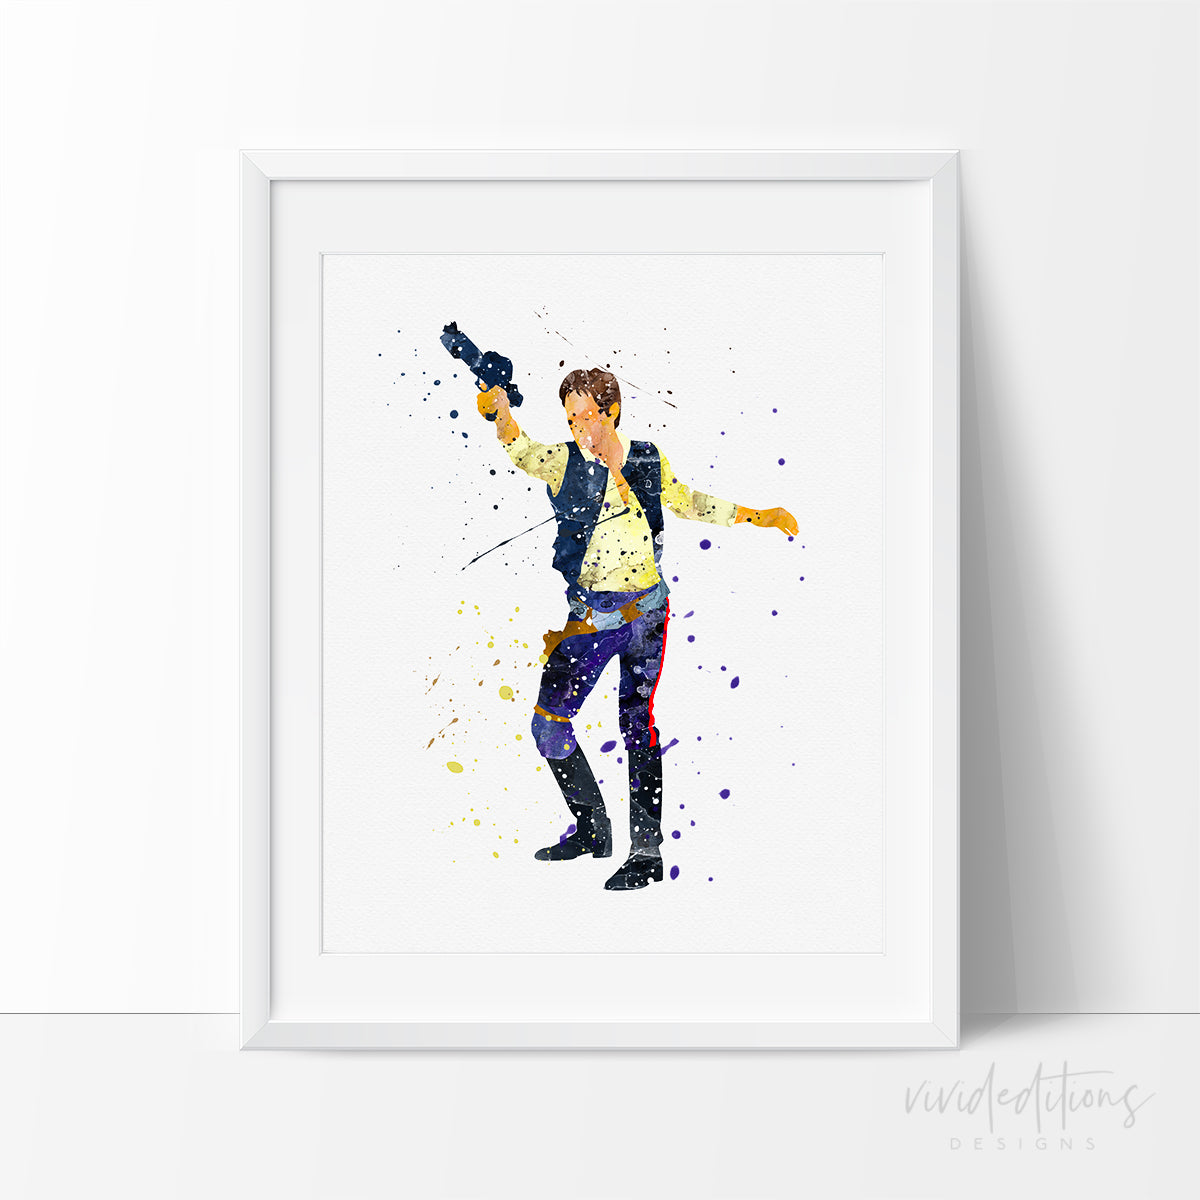 Han Solo Star Wars Watercolor Art Print Art Print - VIVIDEDITIONS